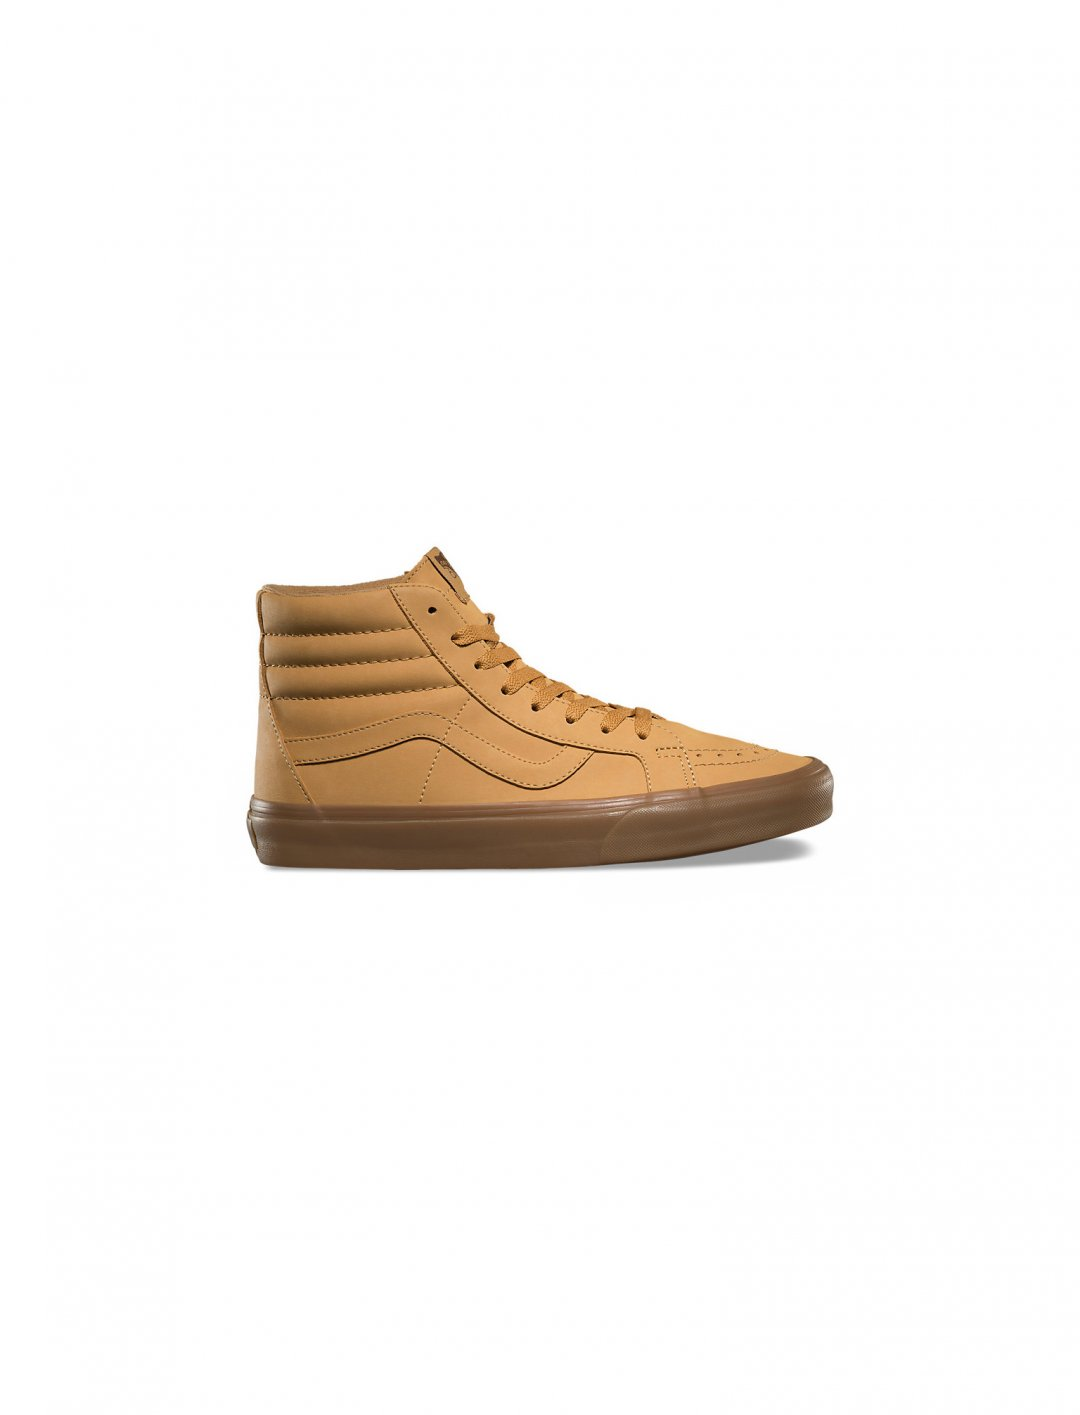 "Justin Timberlake's Hi Top Sneaker {""id"":12,""product_section_id"":1,""name"":""Shoes"",""order"":12} Vans"